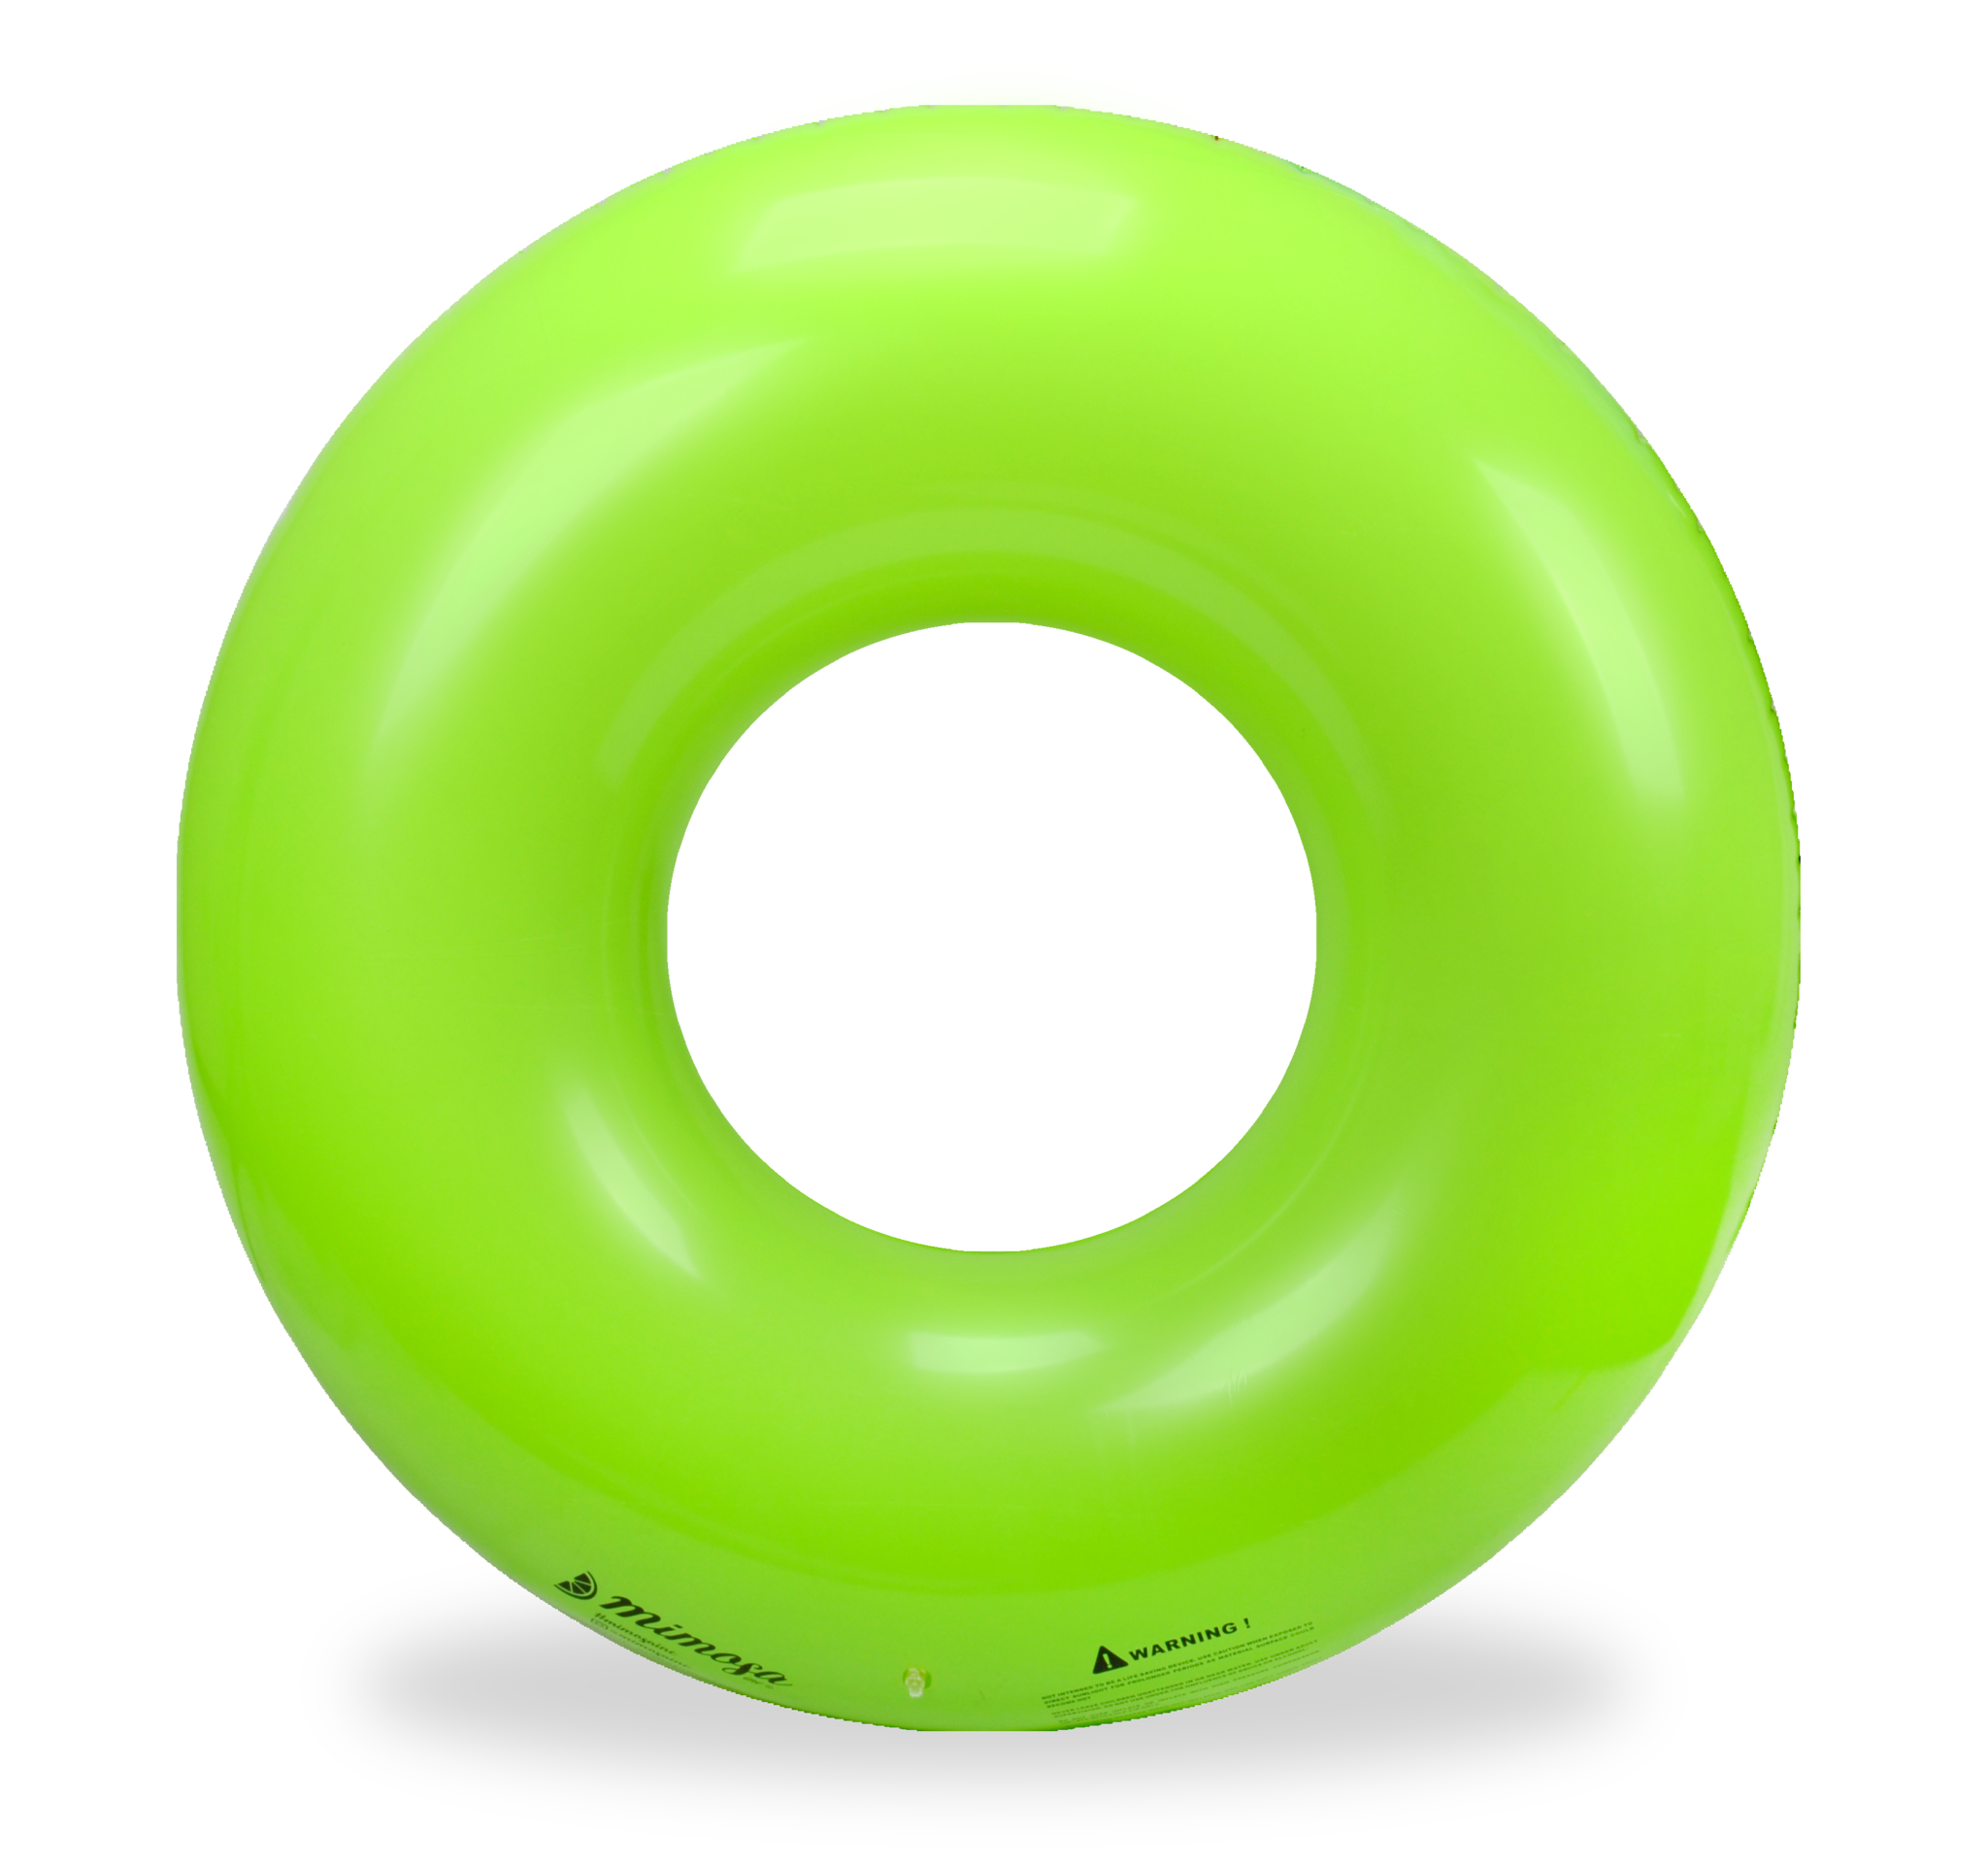 Pool float png. Bright green round tube